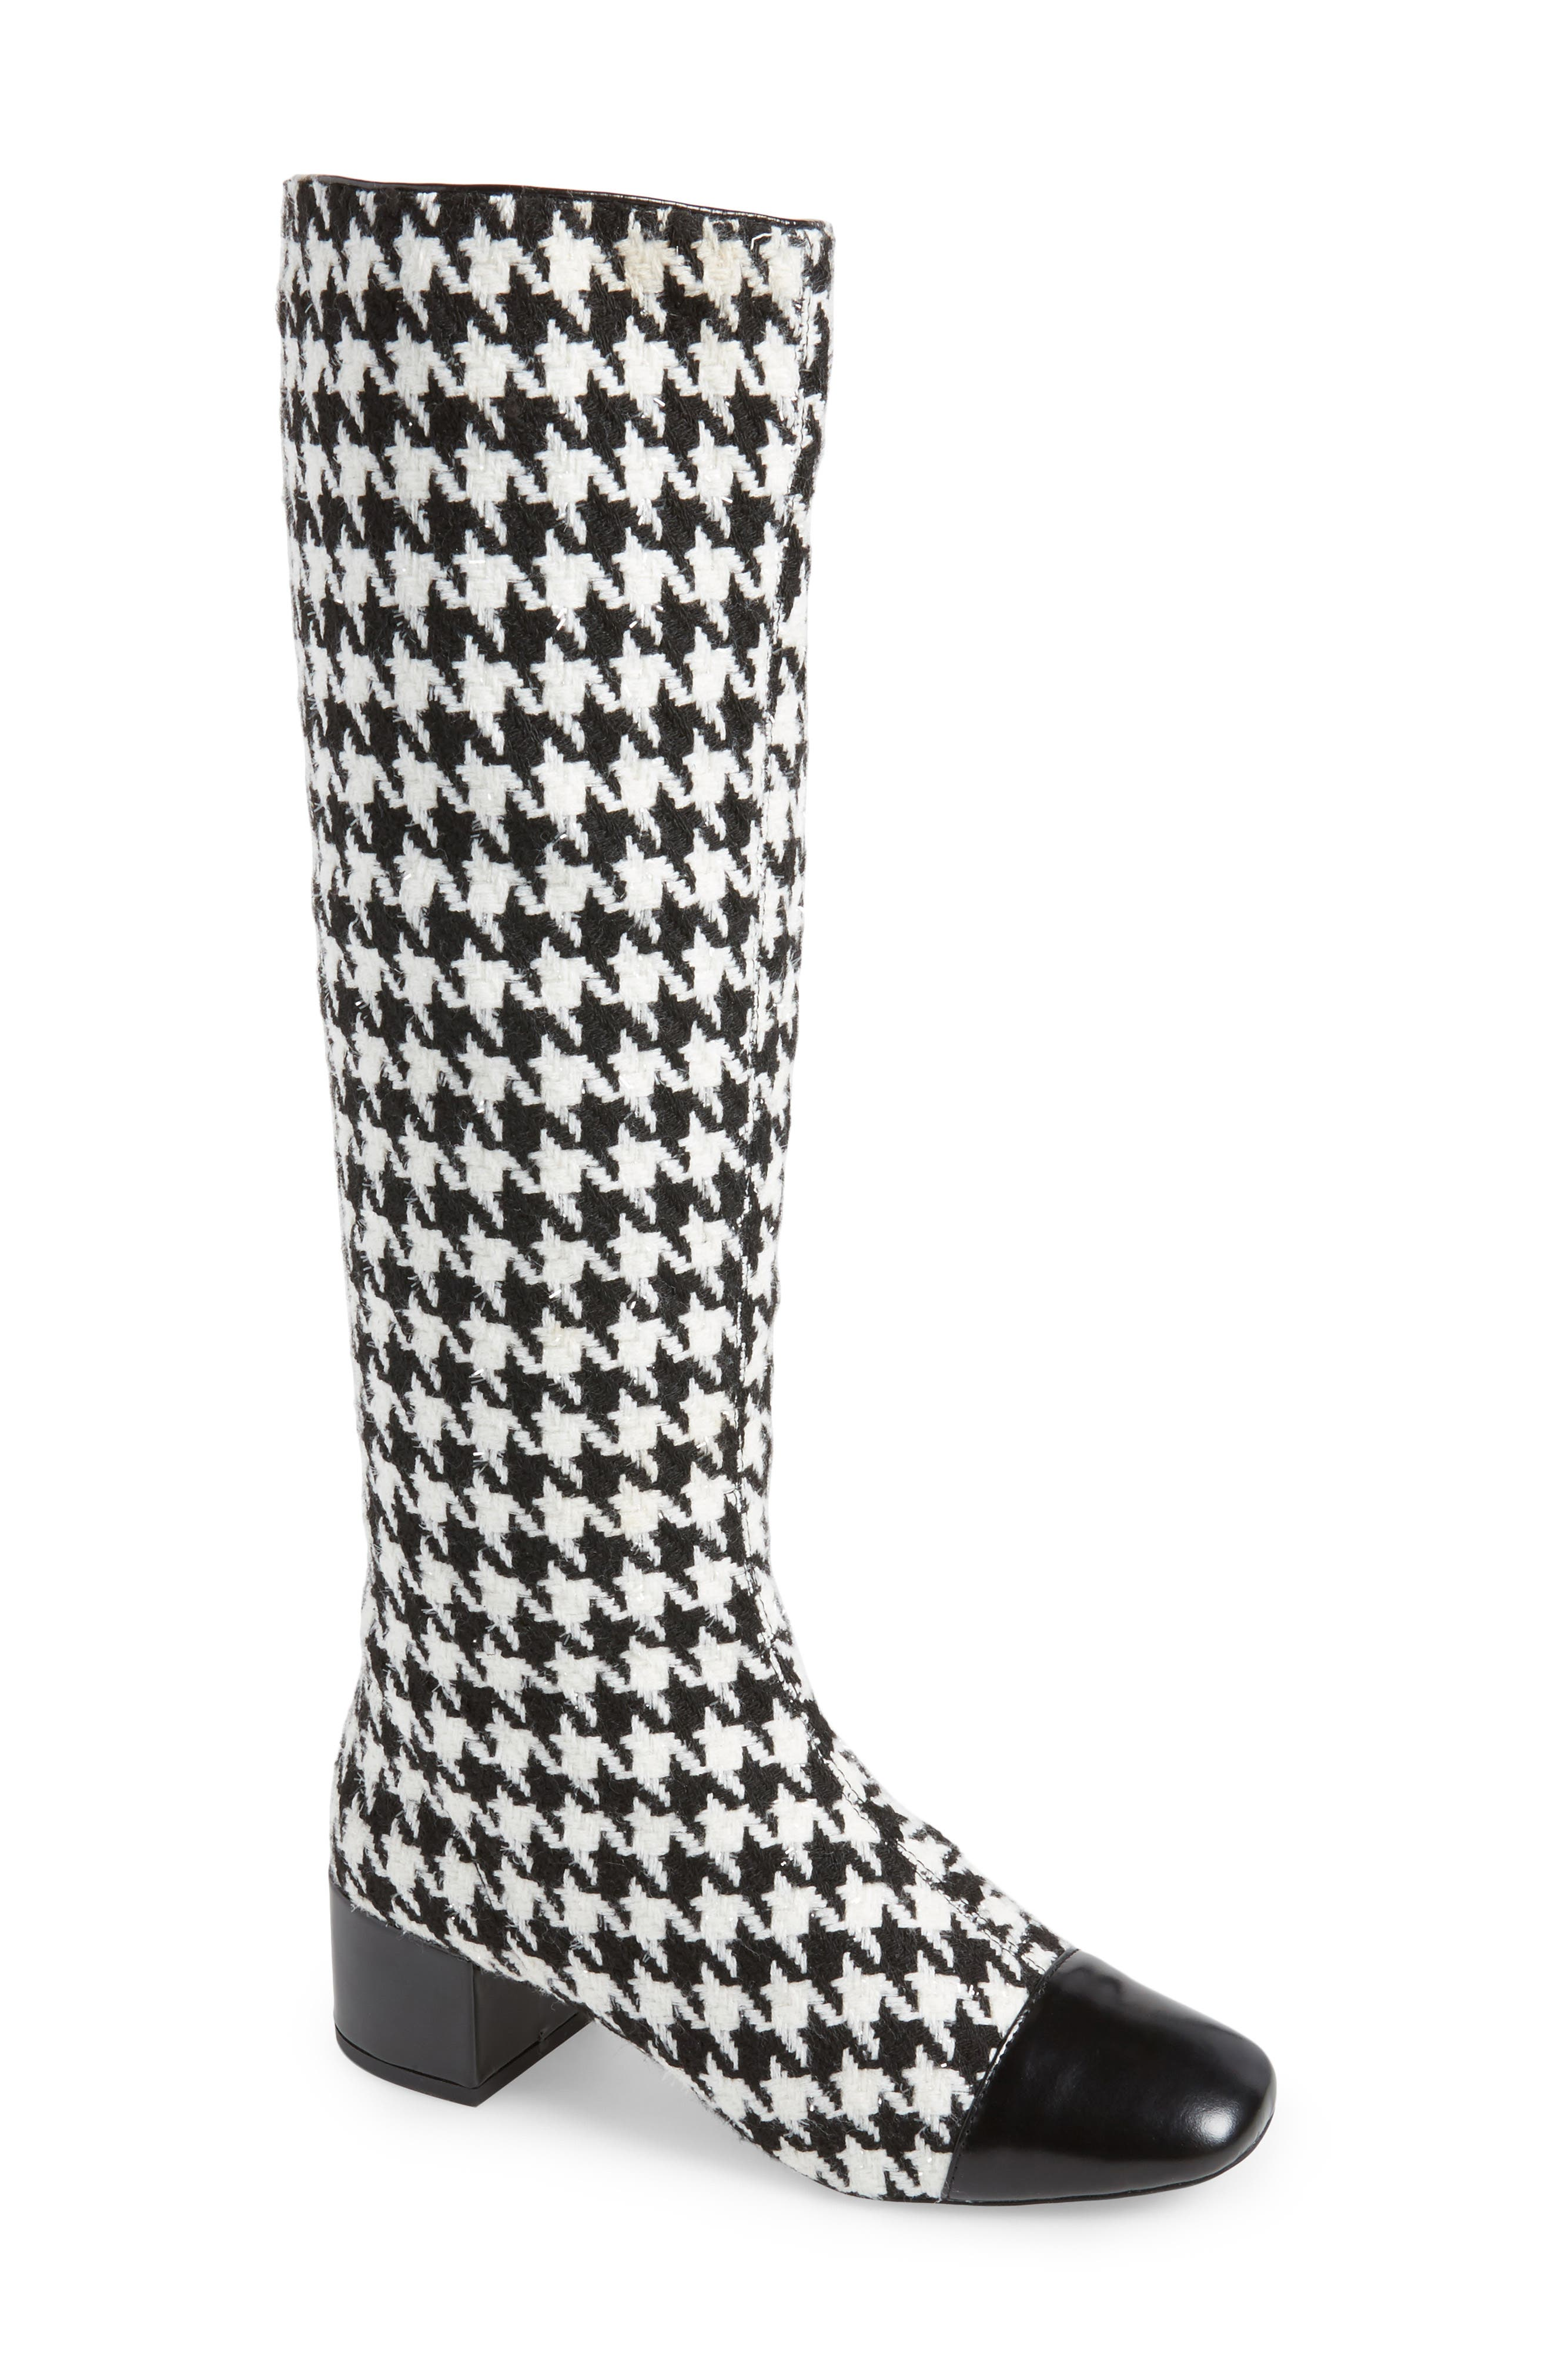 Covey Knee-High Boot,                             Main thumbnail 1, color,                             Black White Houndstooth